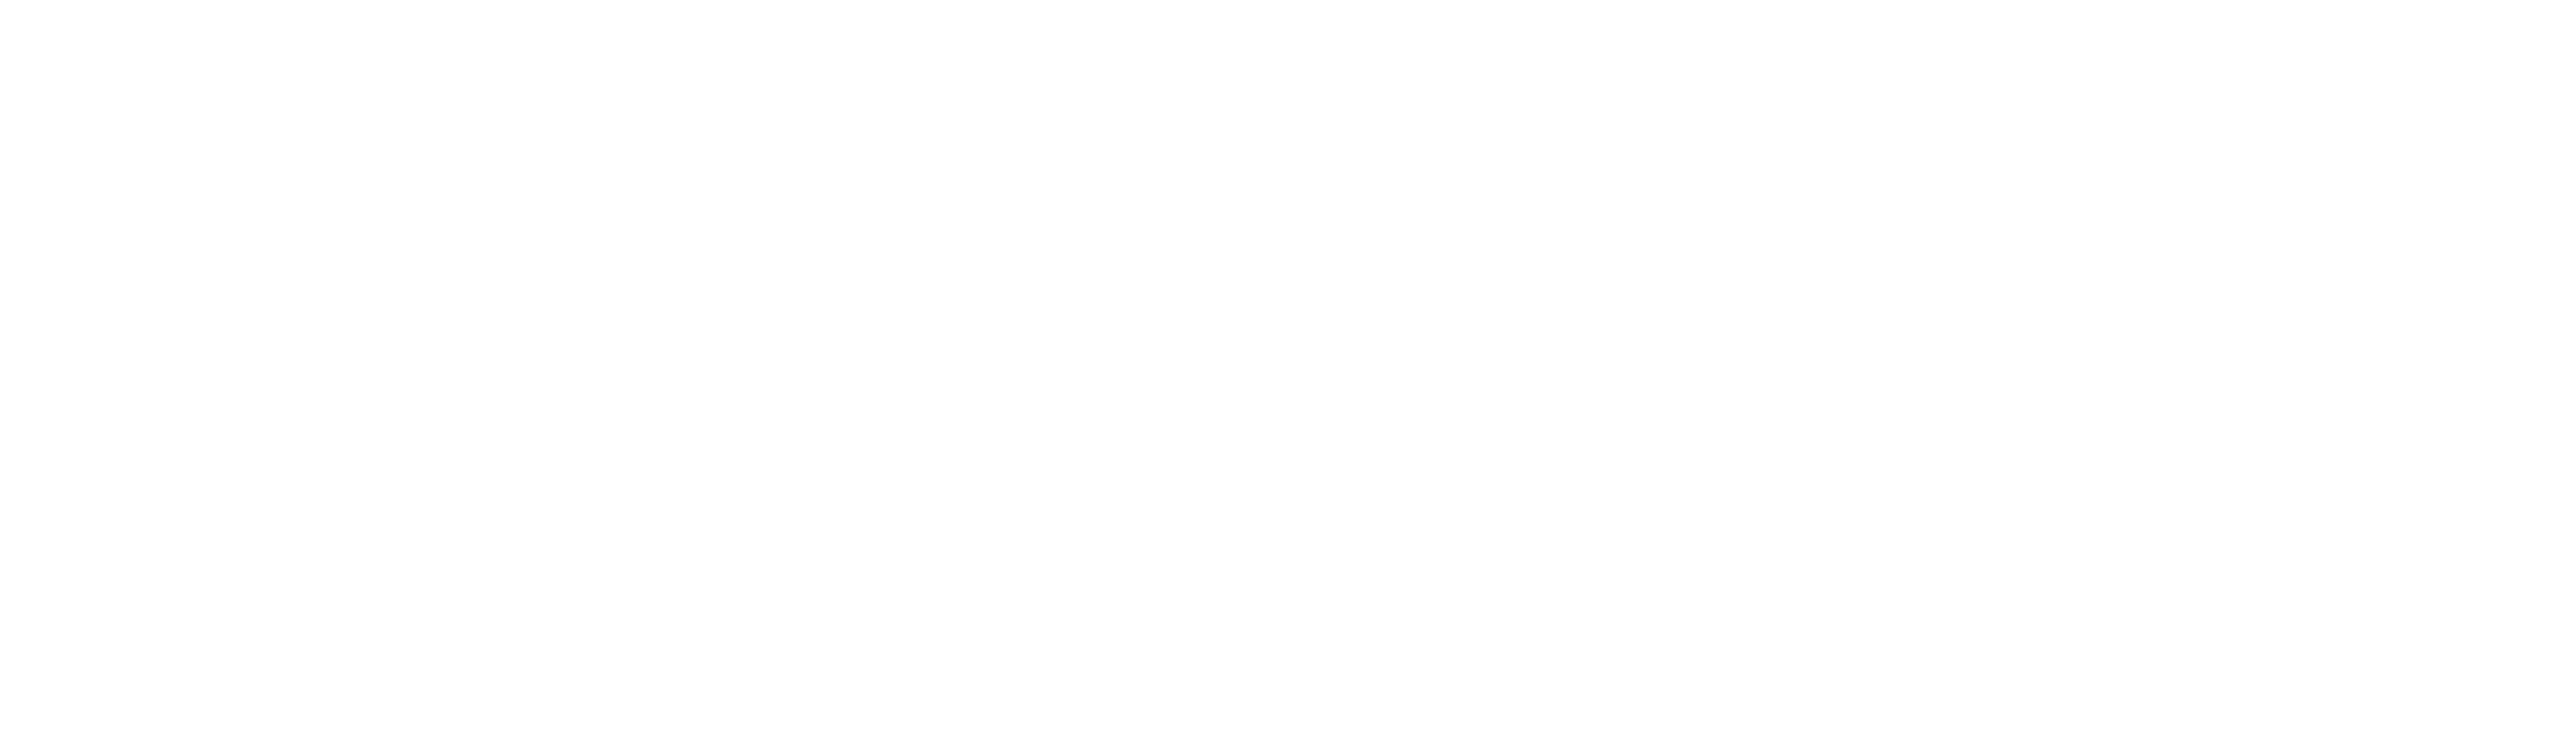 Bailstone Flower Shop - Flower Delivery in East Moriches, NY